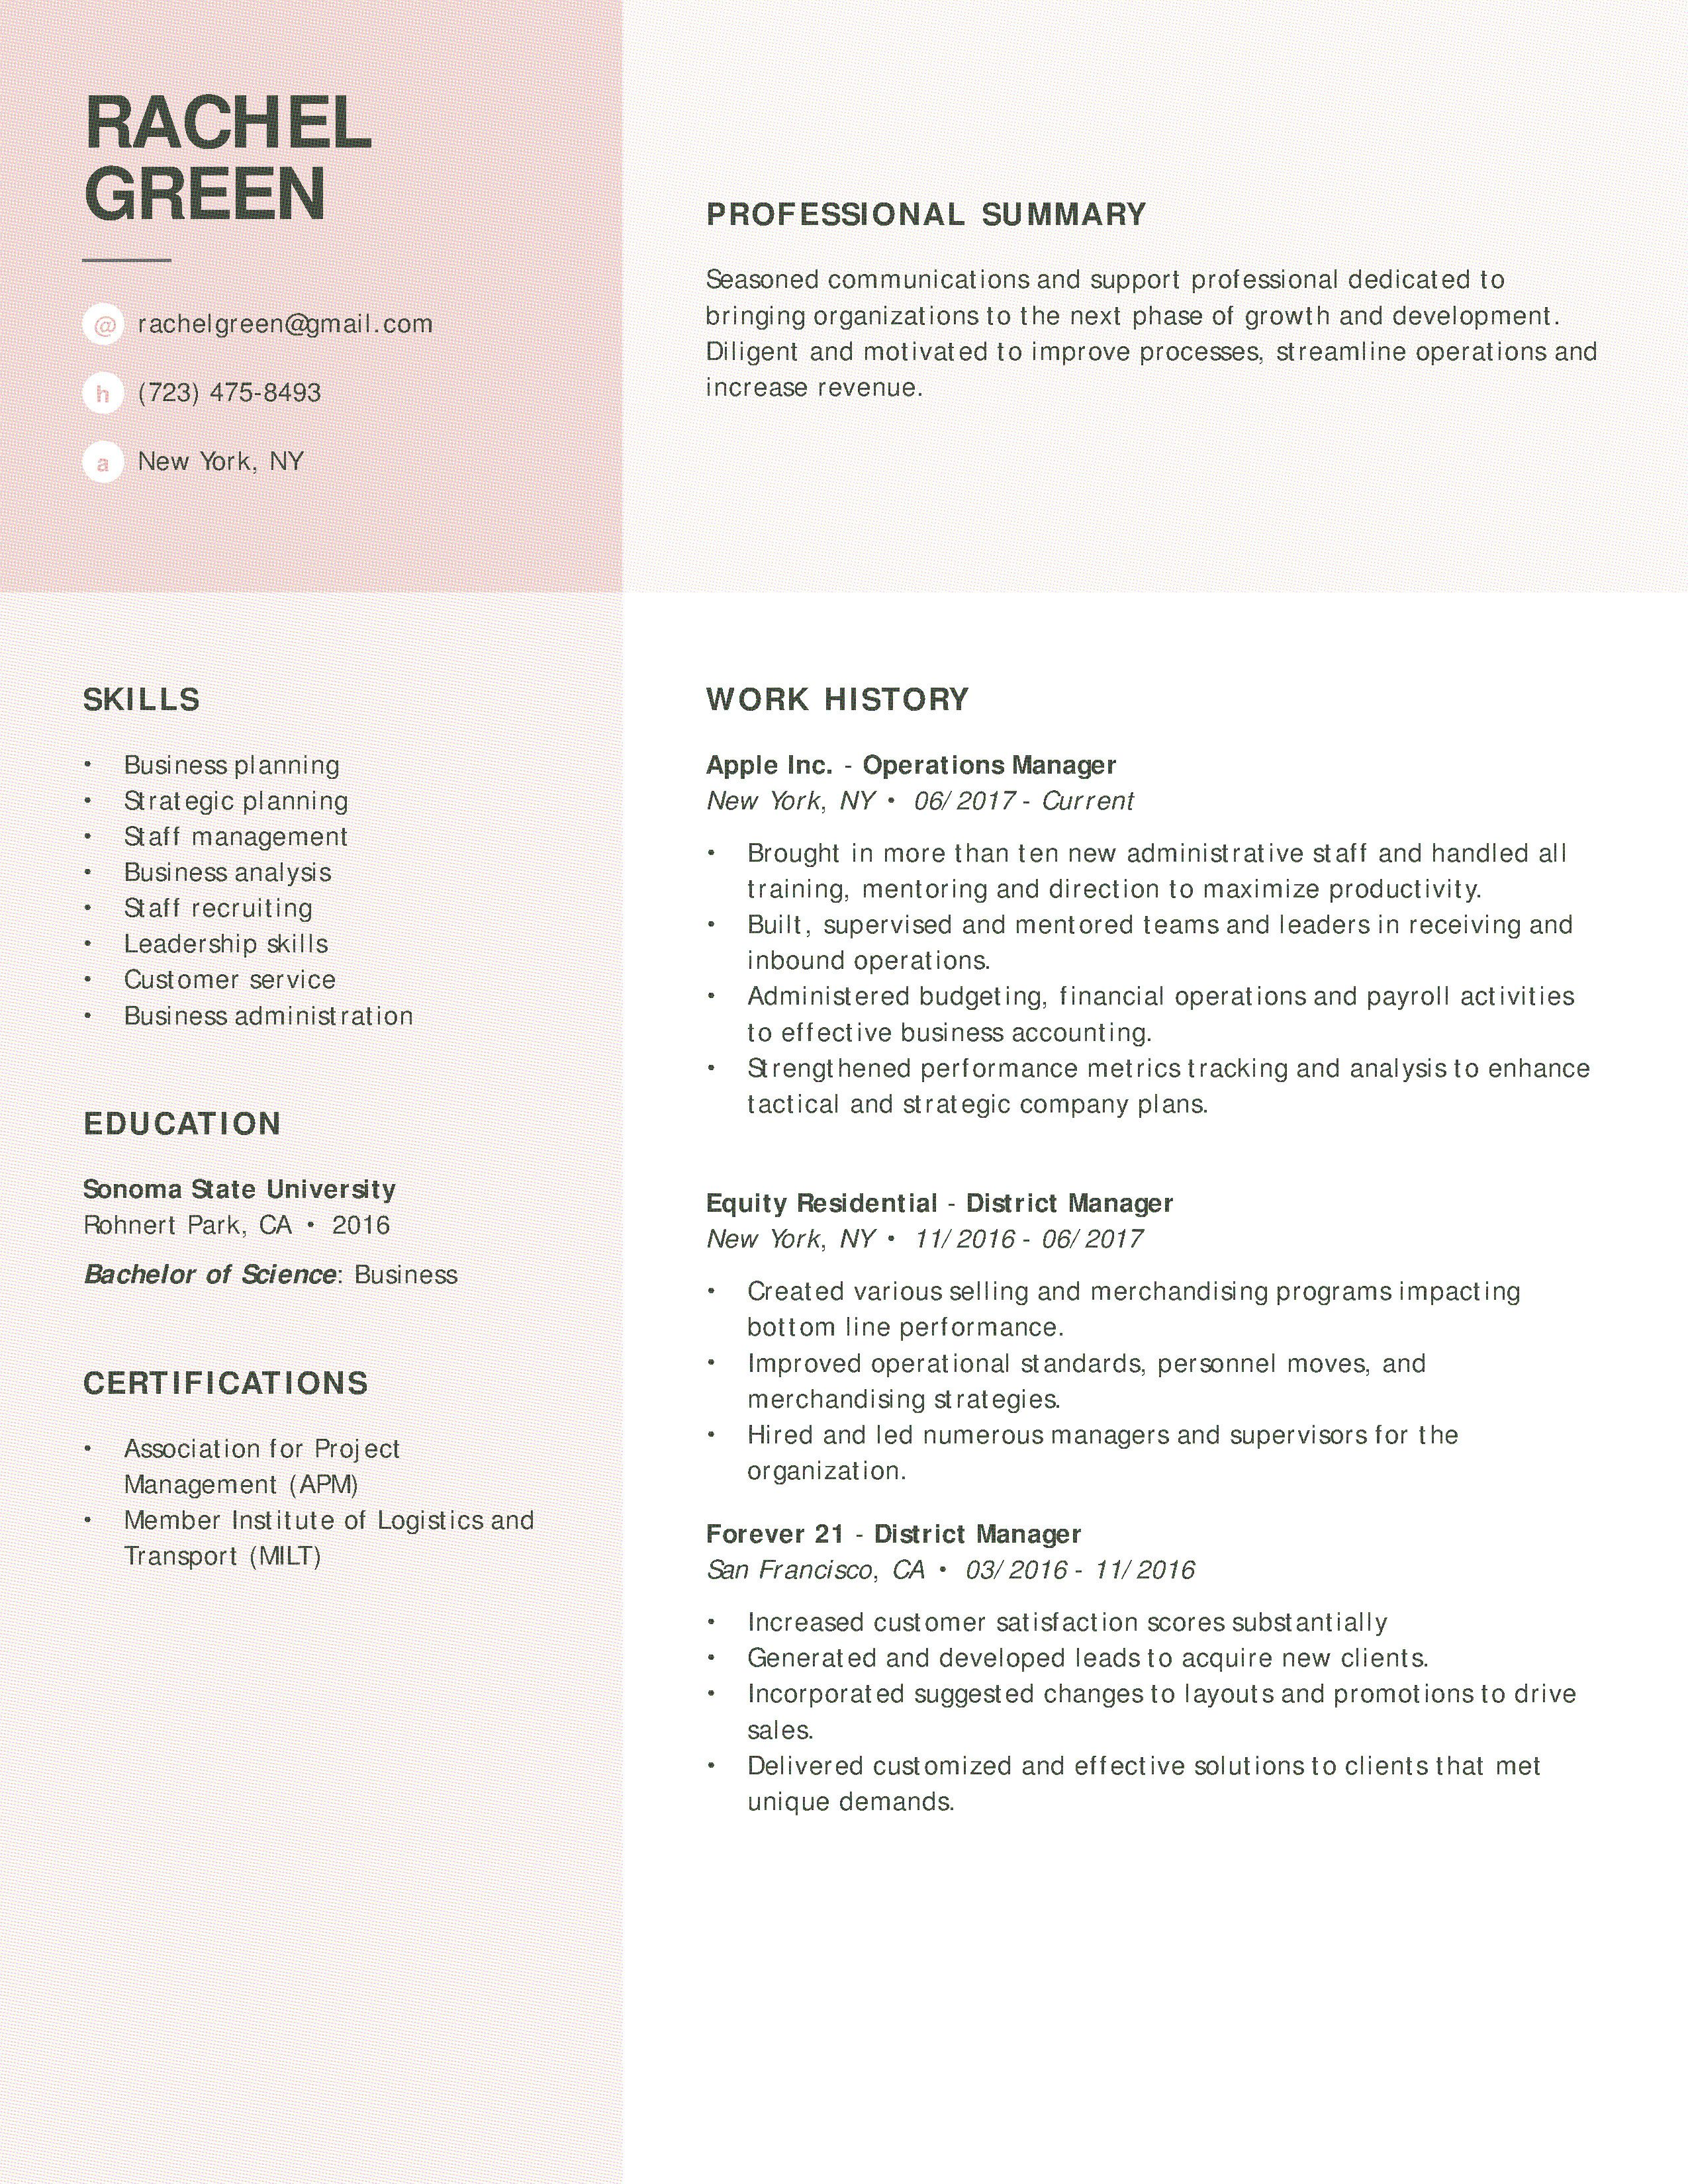 local resume services near me unique 30 resume examples